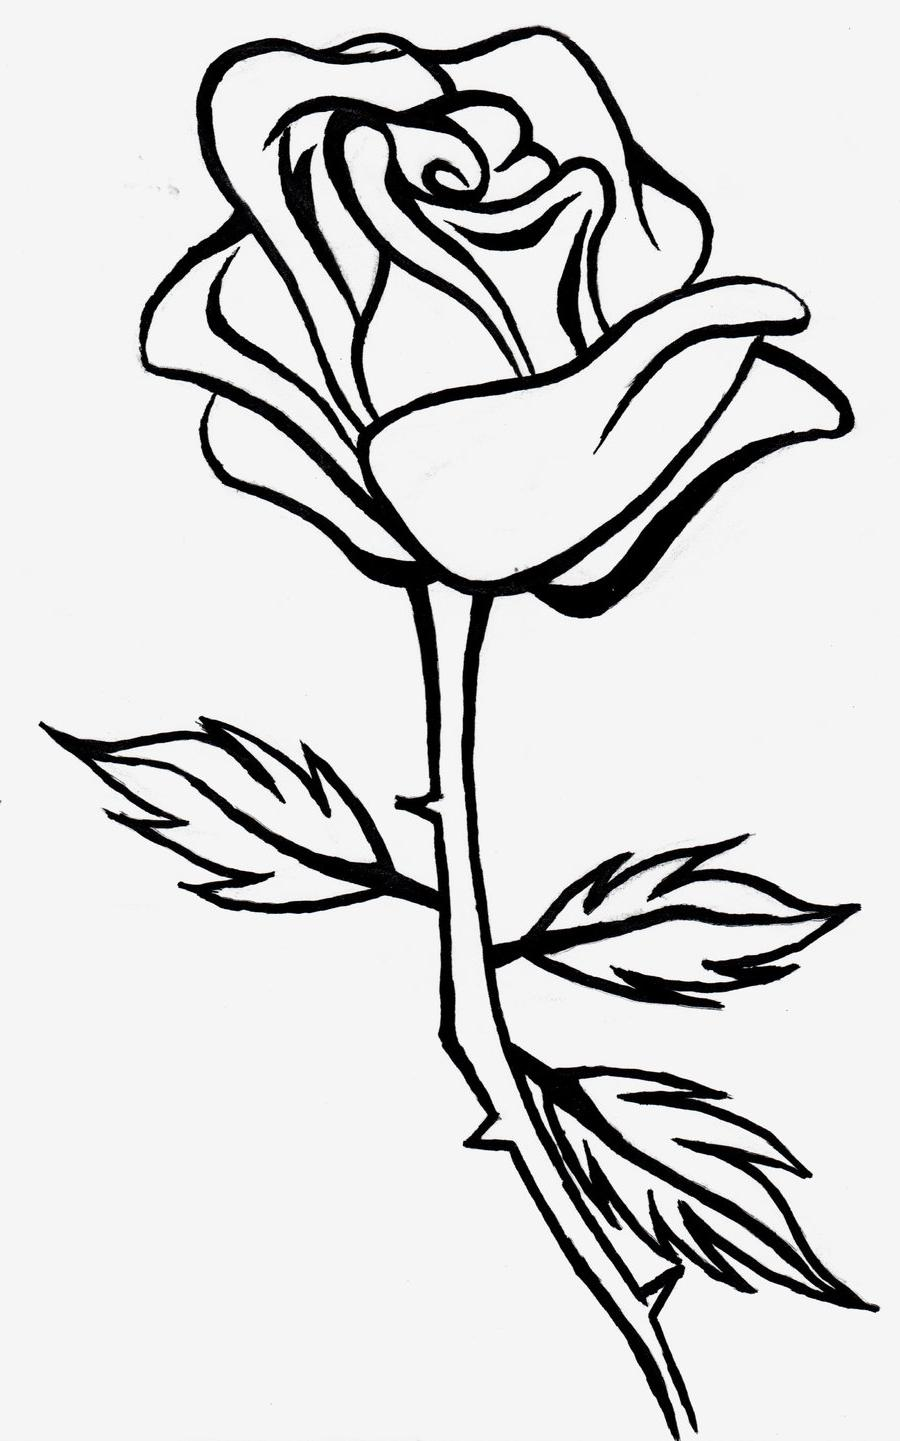 900x1441 Black and white rose drawings free download clip art